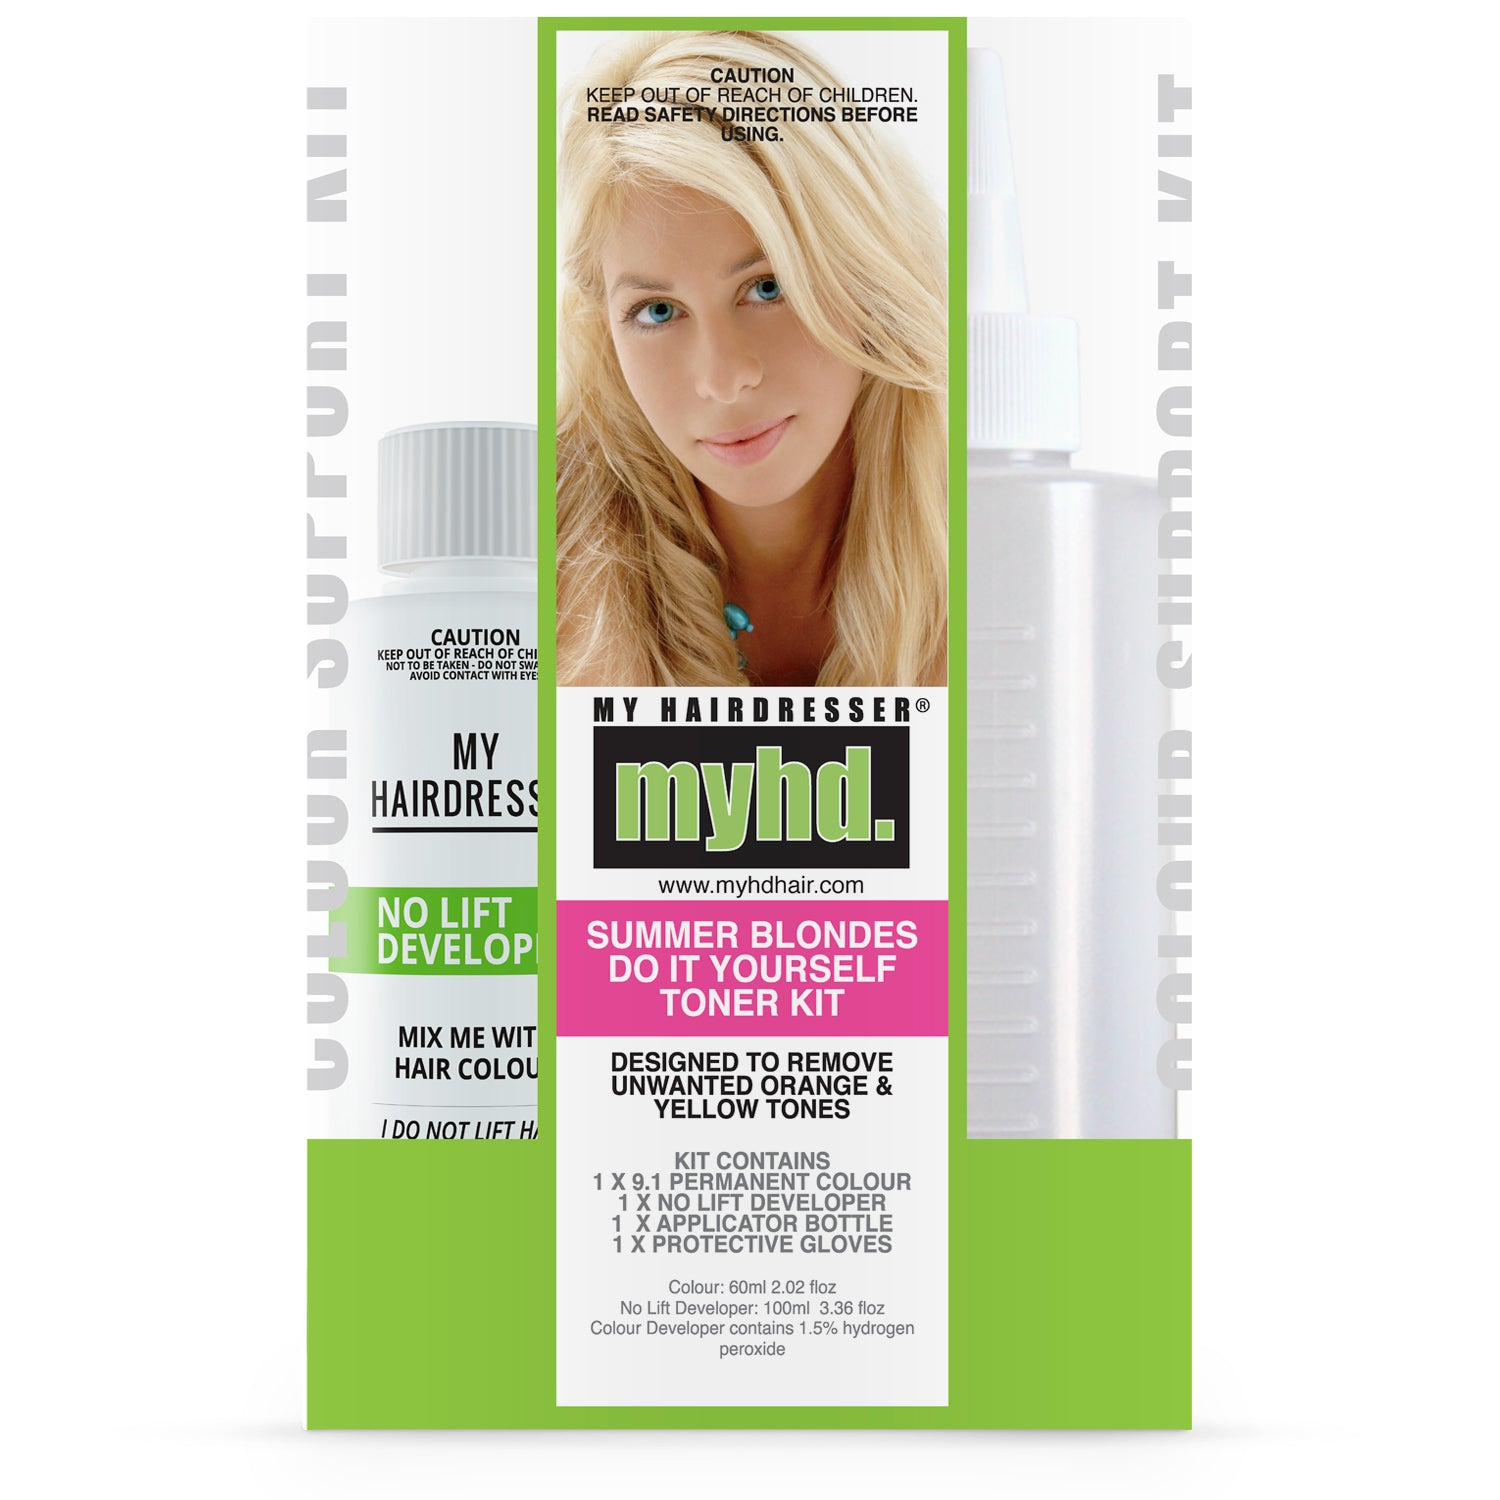 Hair colour remover toner kit pack my hairdresser online this is from your previous colour and developers and is a normal part of the process use the toner kit if you are happy with your colour remover result and solutioingenieria Choice Image